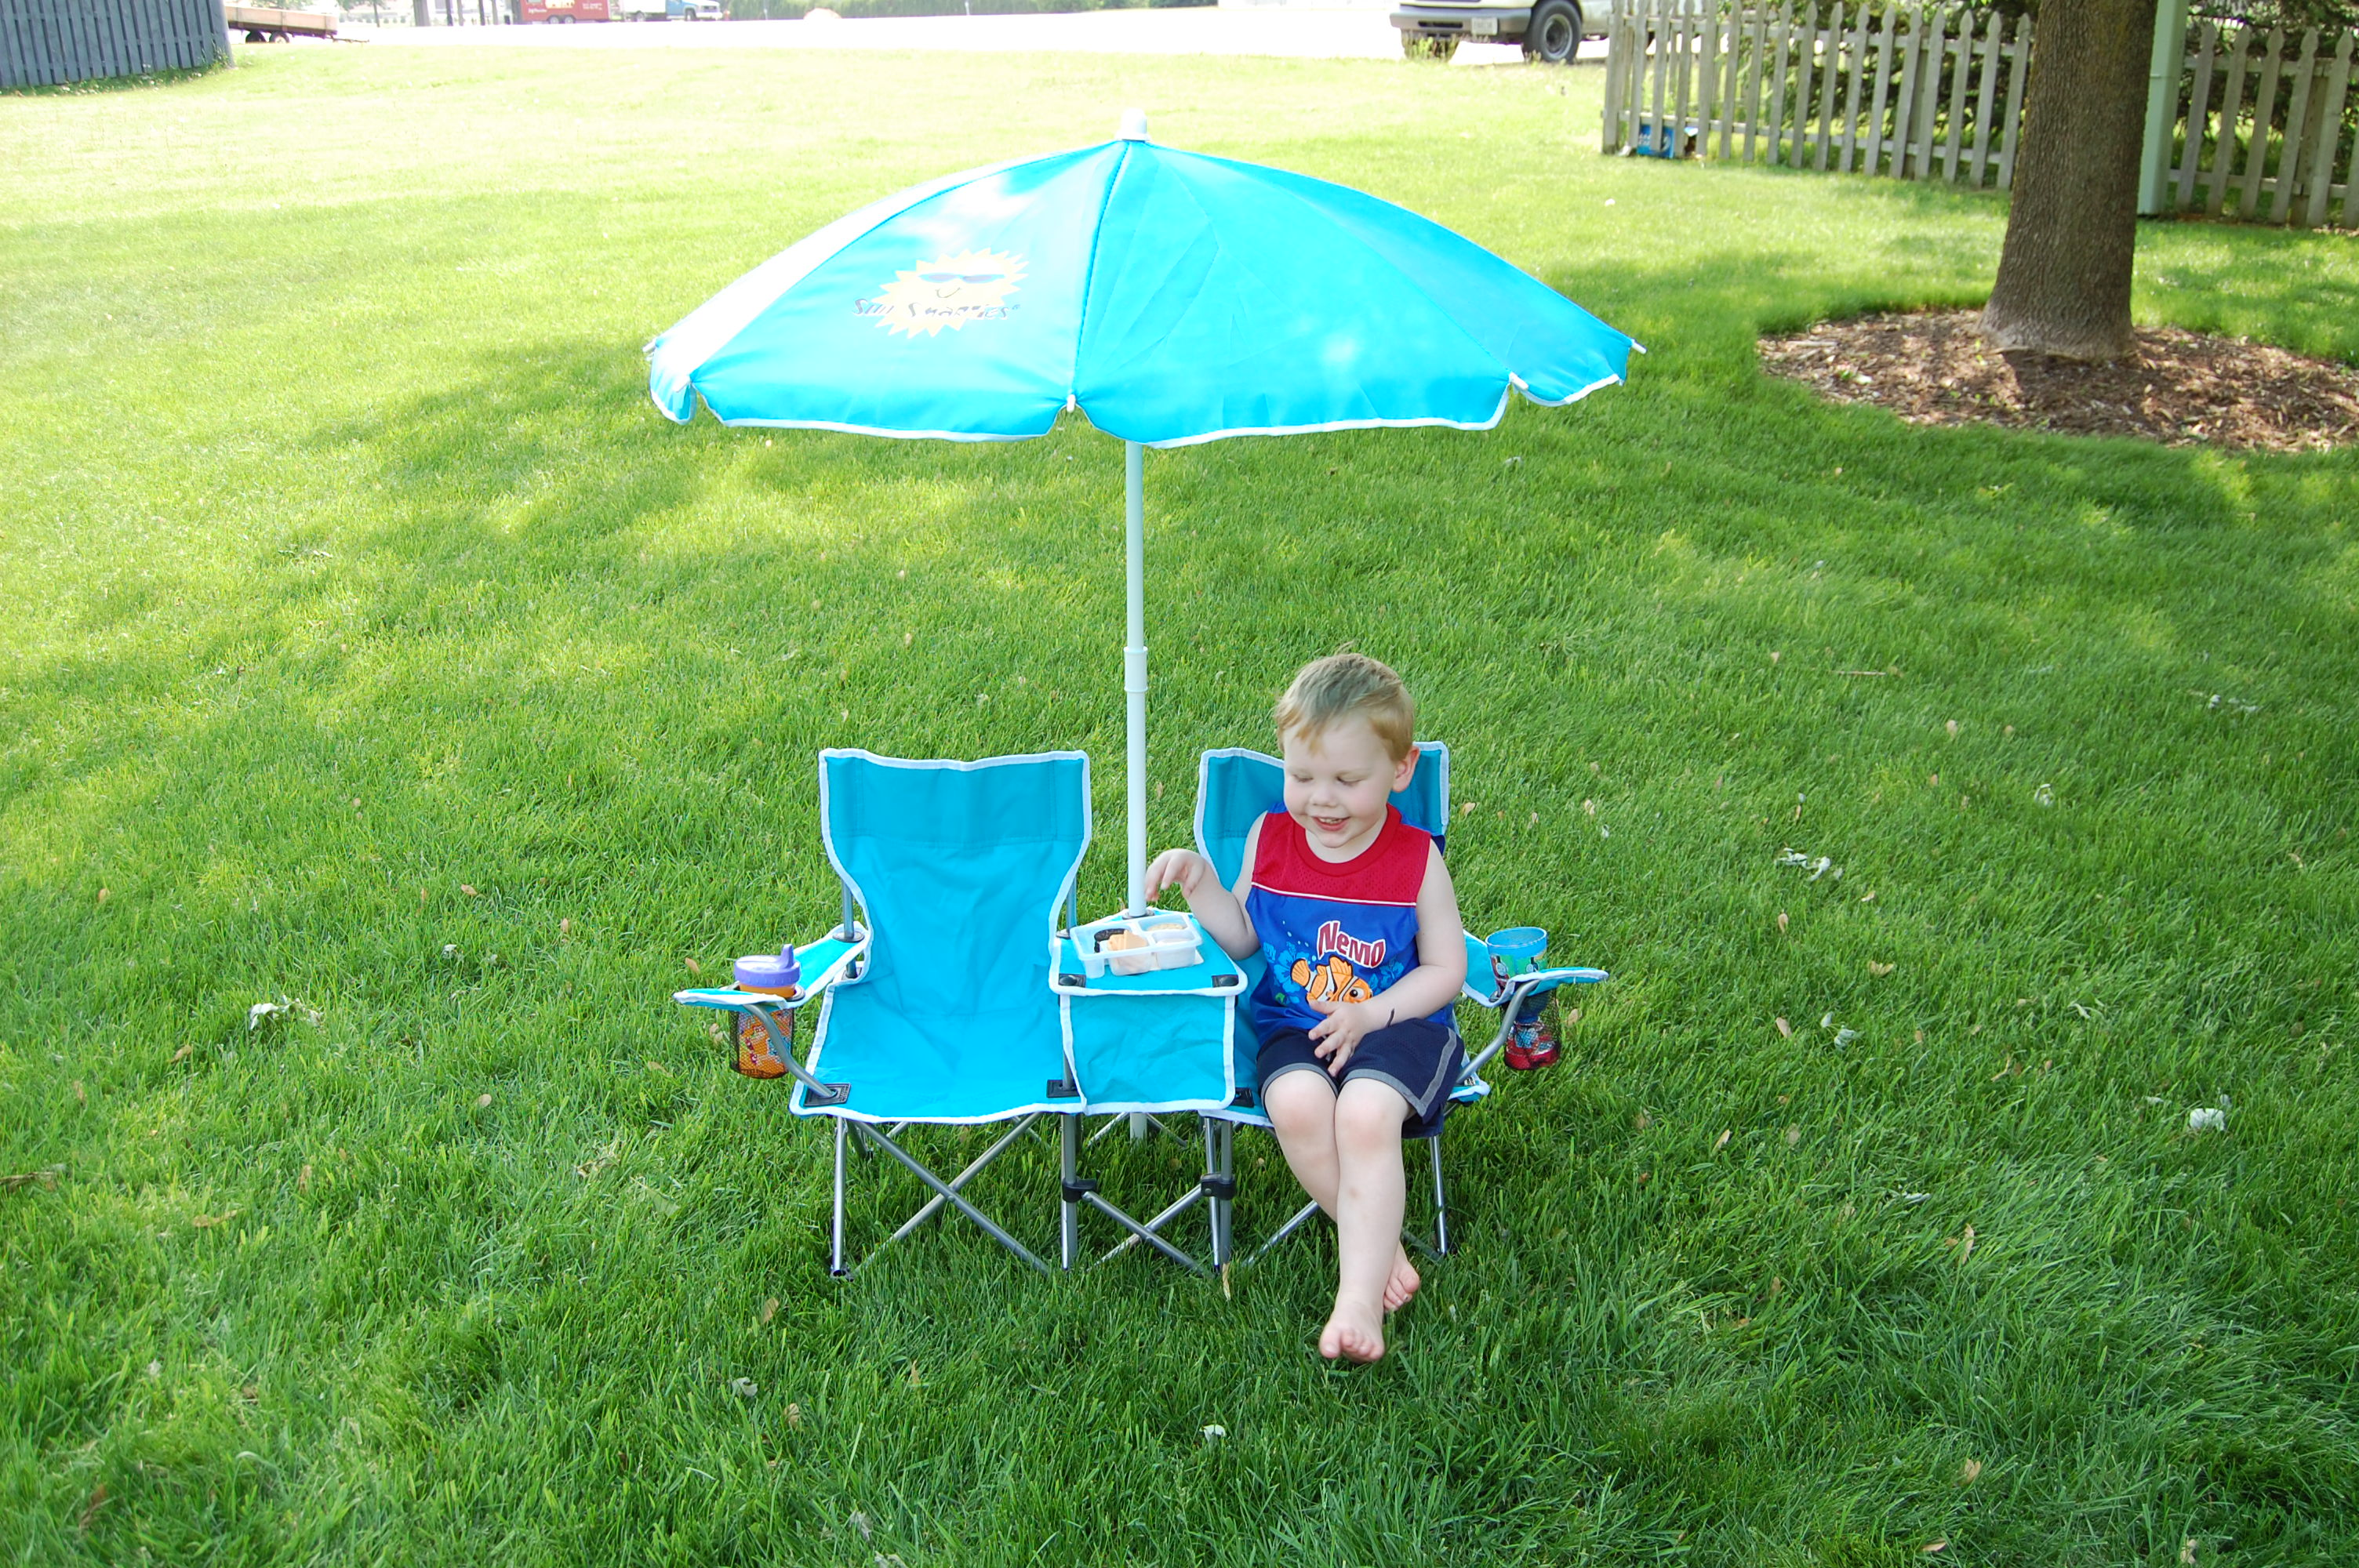 The Sun Smarties Kids Double Folding Chair And Umbrella Also Come With A  Carry Bag. I Was Surprised At How Easily Both The Umbrella And Chair Fit  Inside.